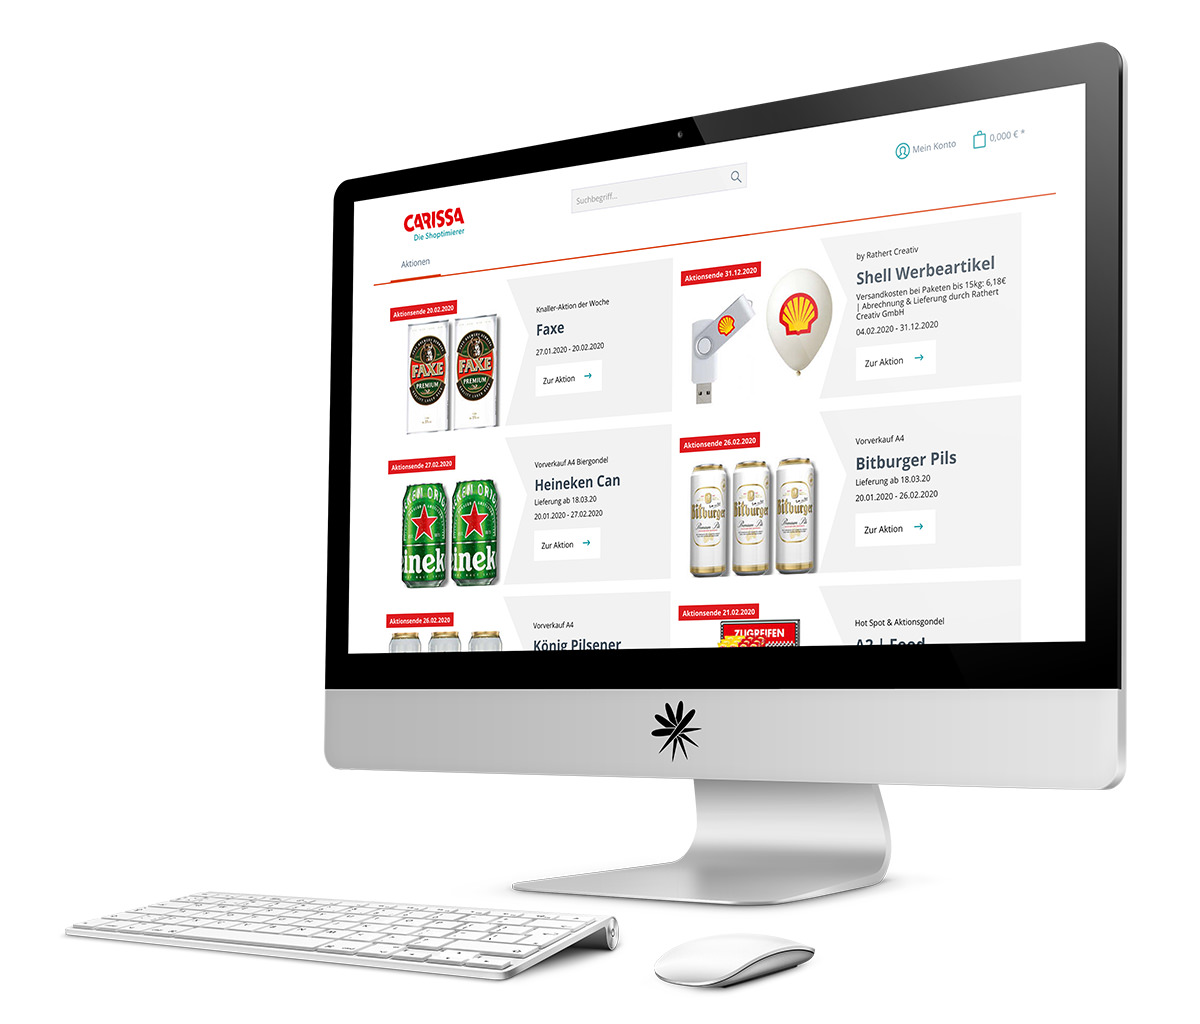 Projekt CARISSA Shopware Enterprise Edition Webshop